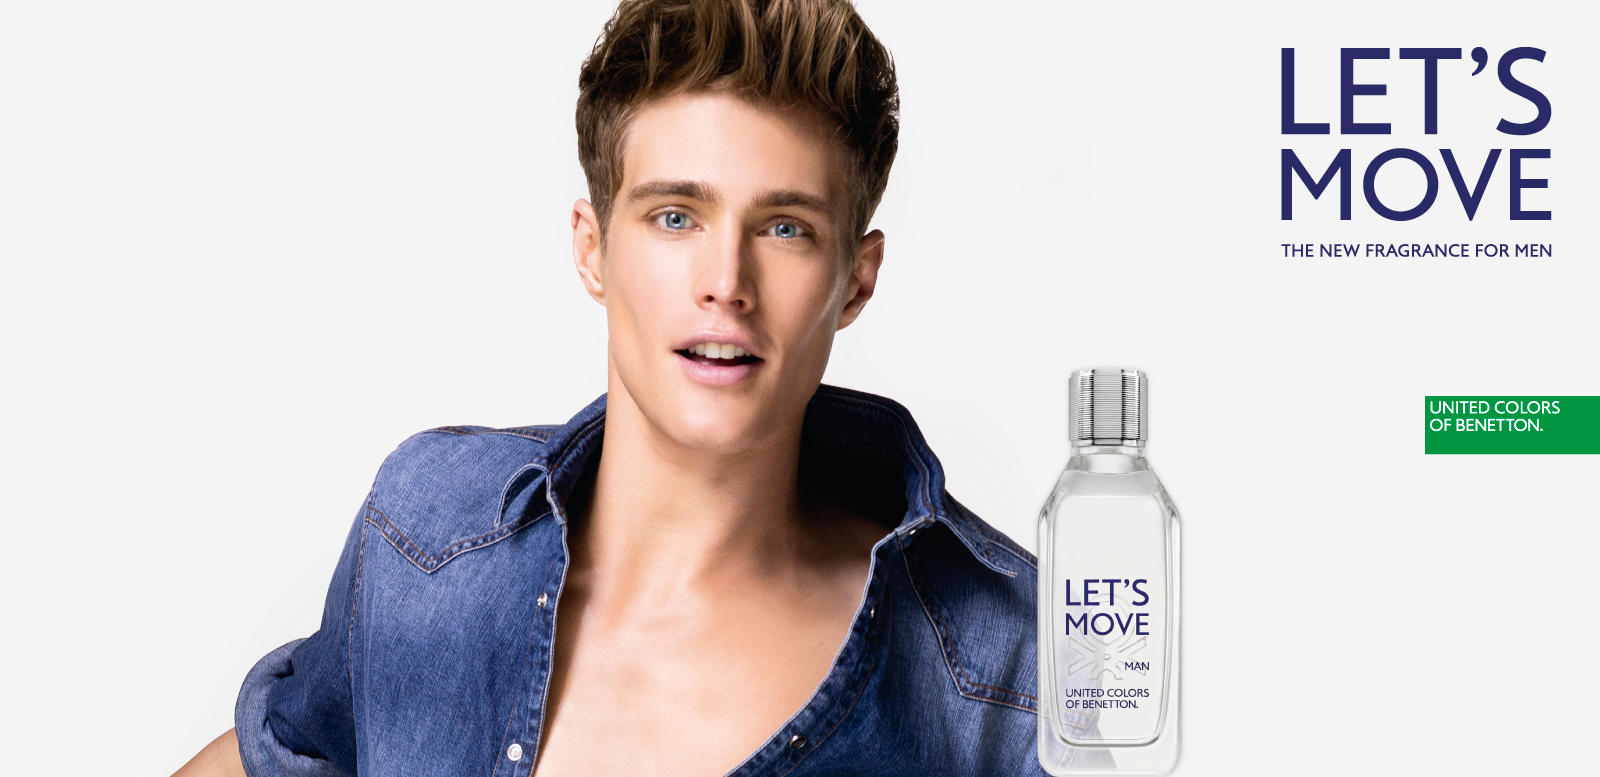 Lets move benetton cologne a fragrance for men 2012 lets move benetton for men pictures sciox Gallery